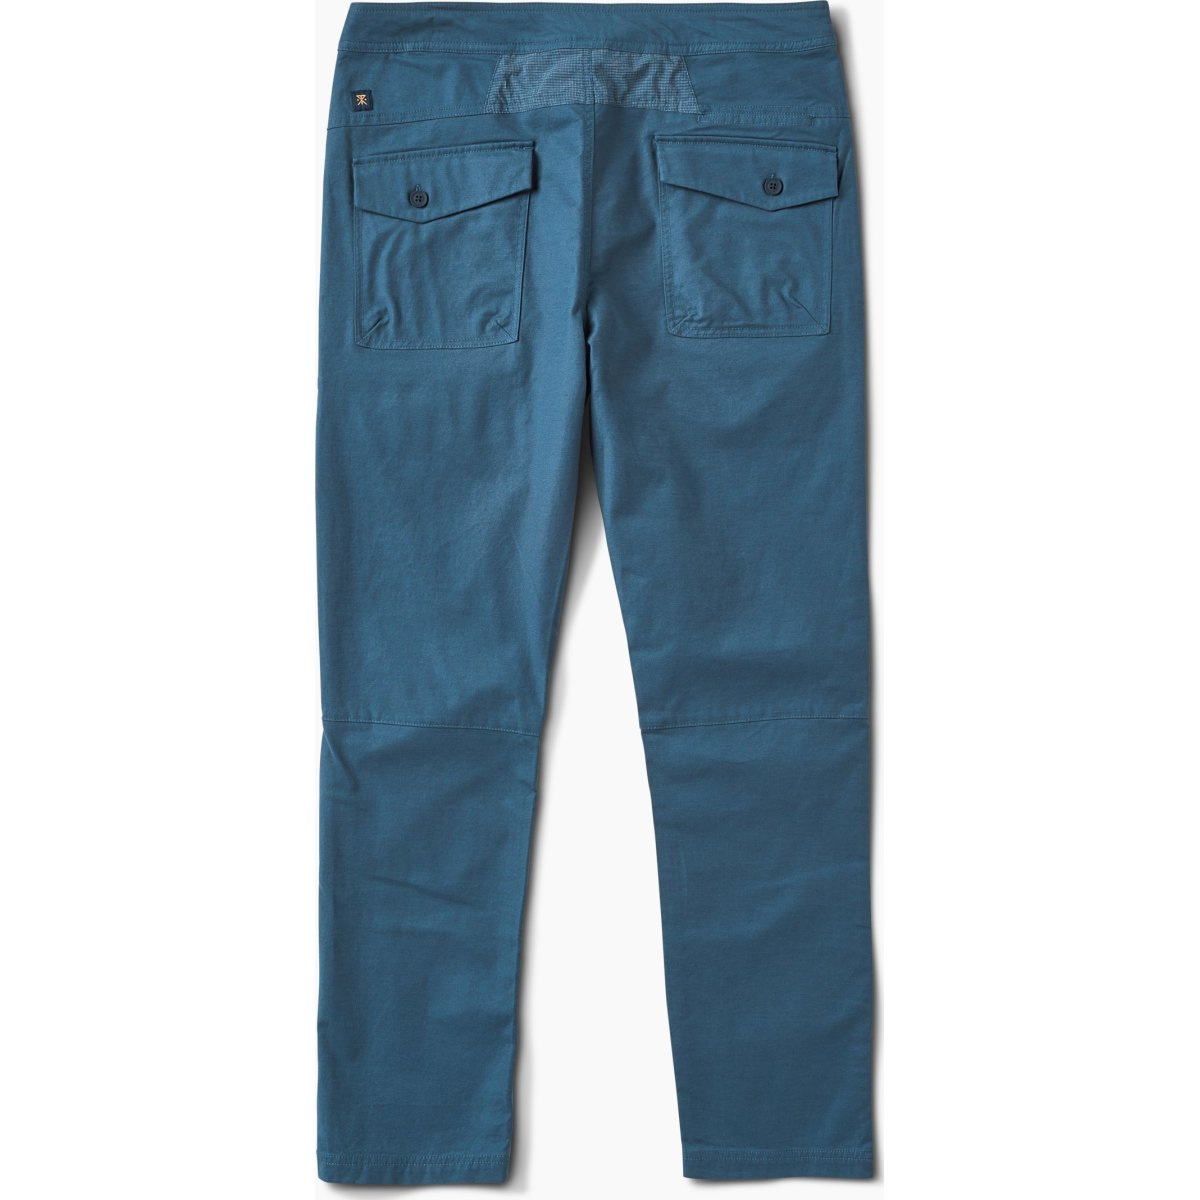 Roark Revival Layover Stretch Travel Pants